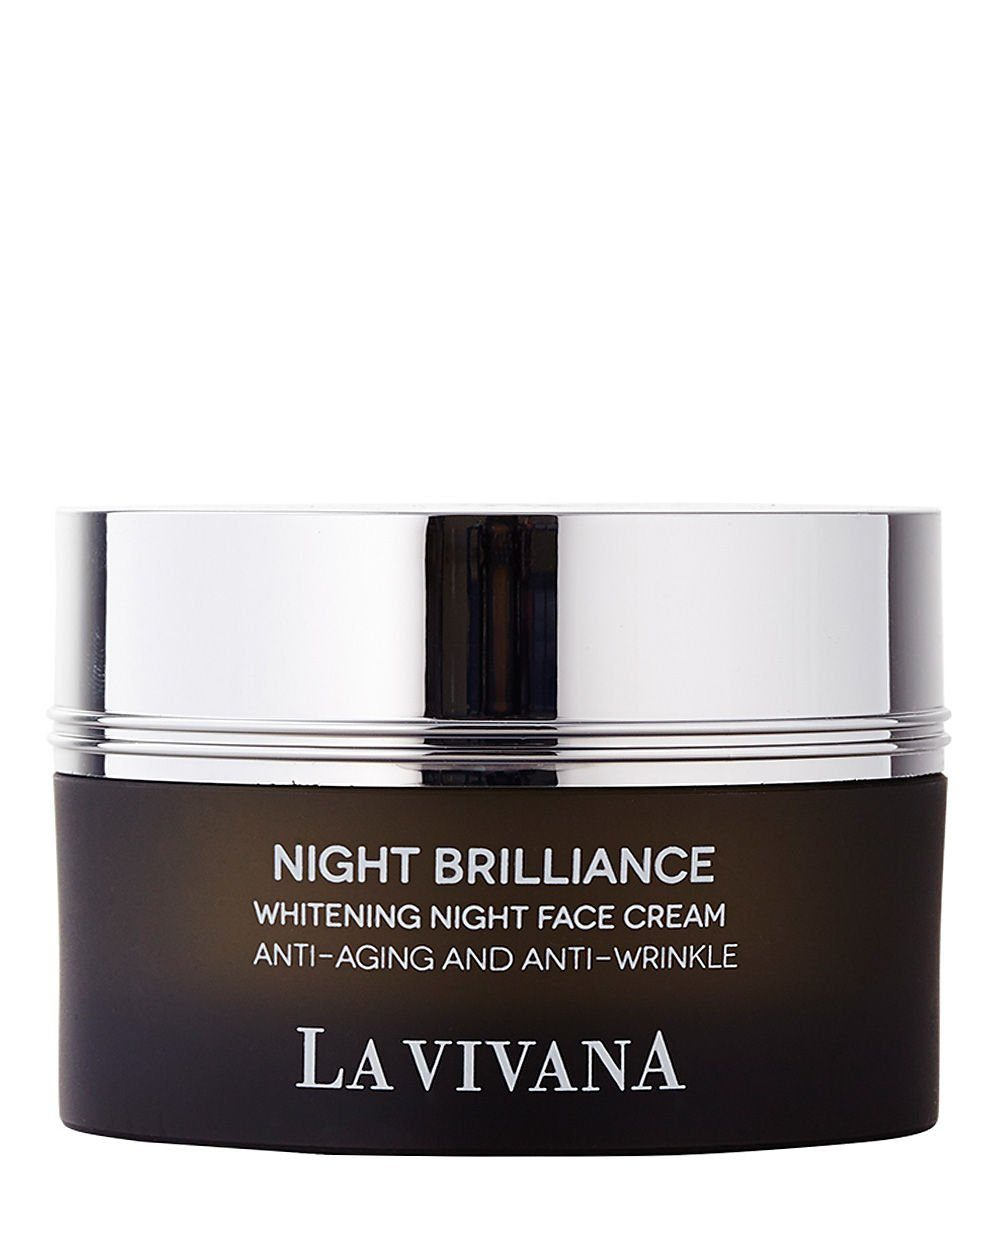 La Vivana Gesichtscreme »Night Brilliance Whitening Night Face Cream«